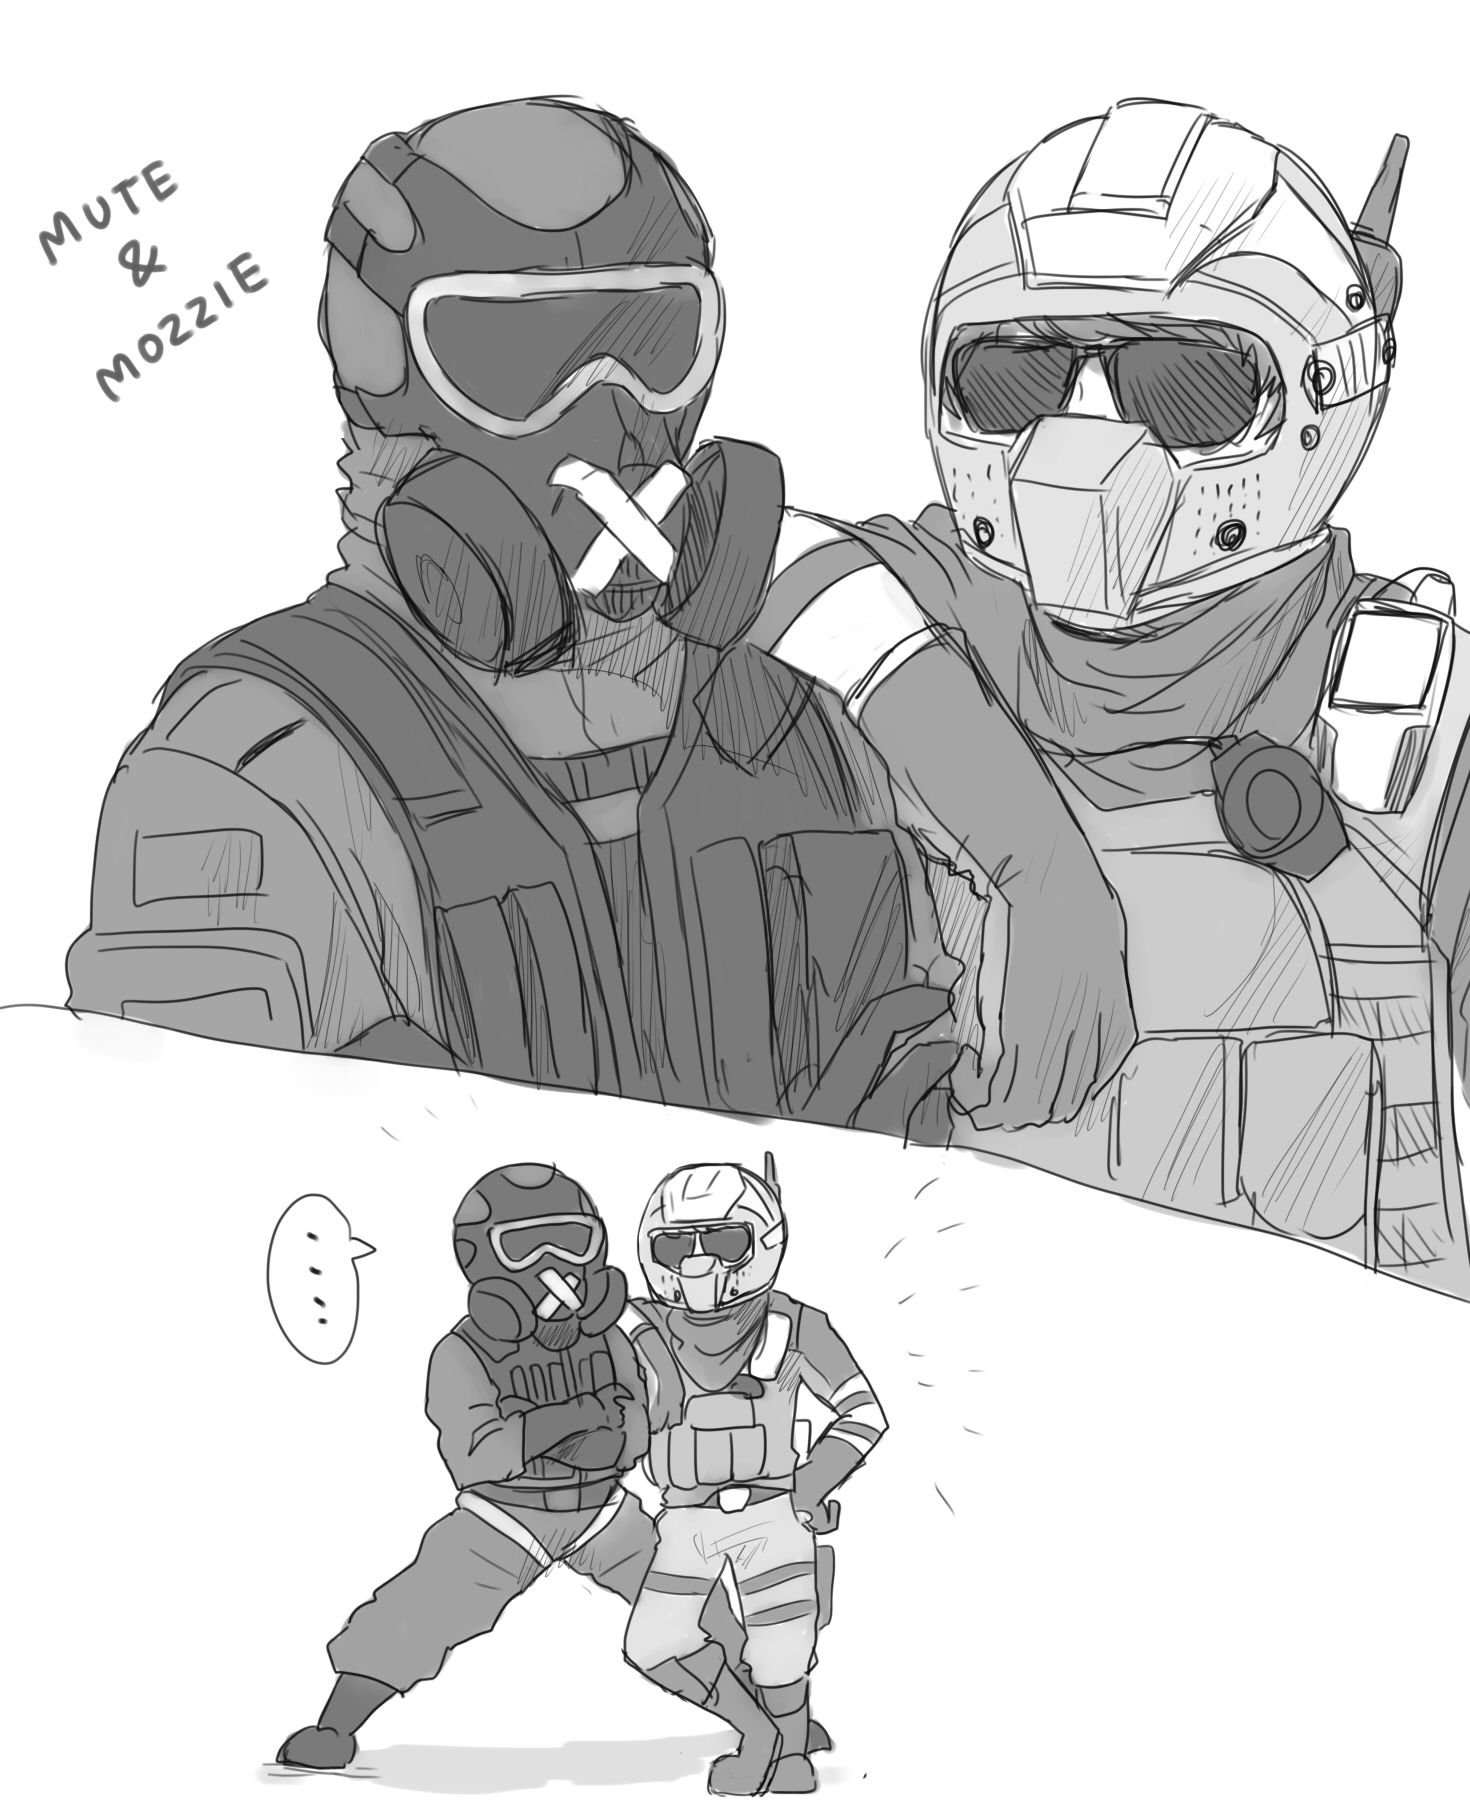 Pin By Marisa Malaruk On R6s With Images Rainbow Six Siege Art